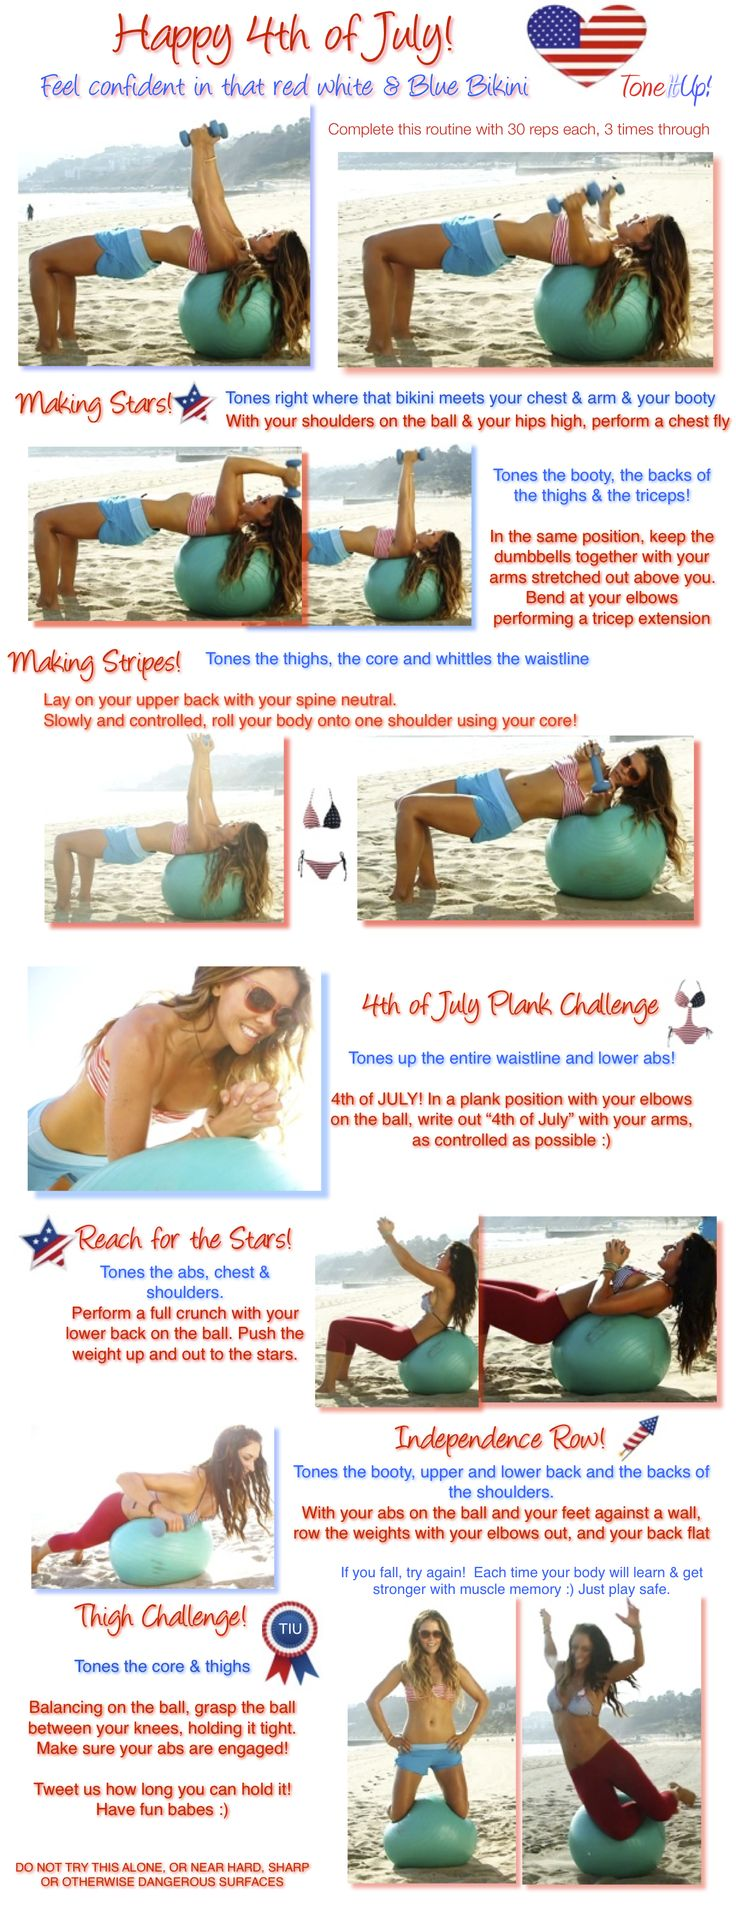 4th of july fitness images